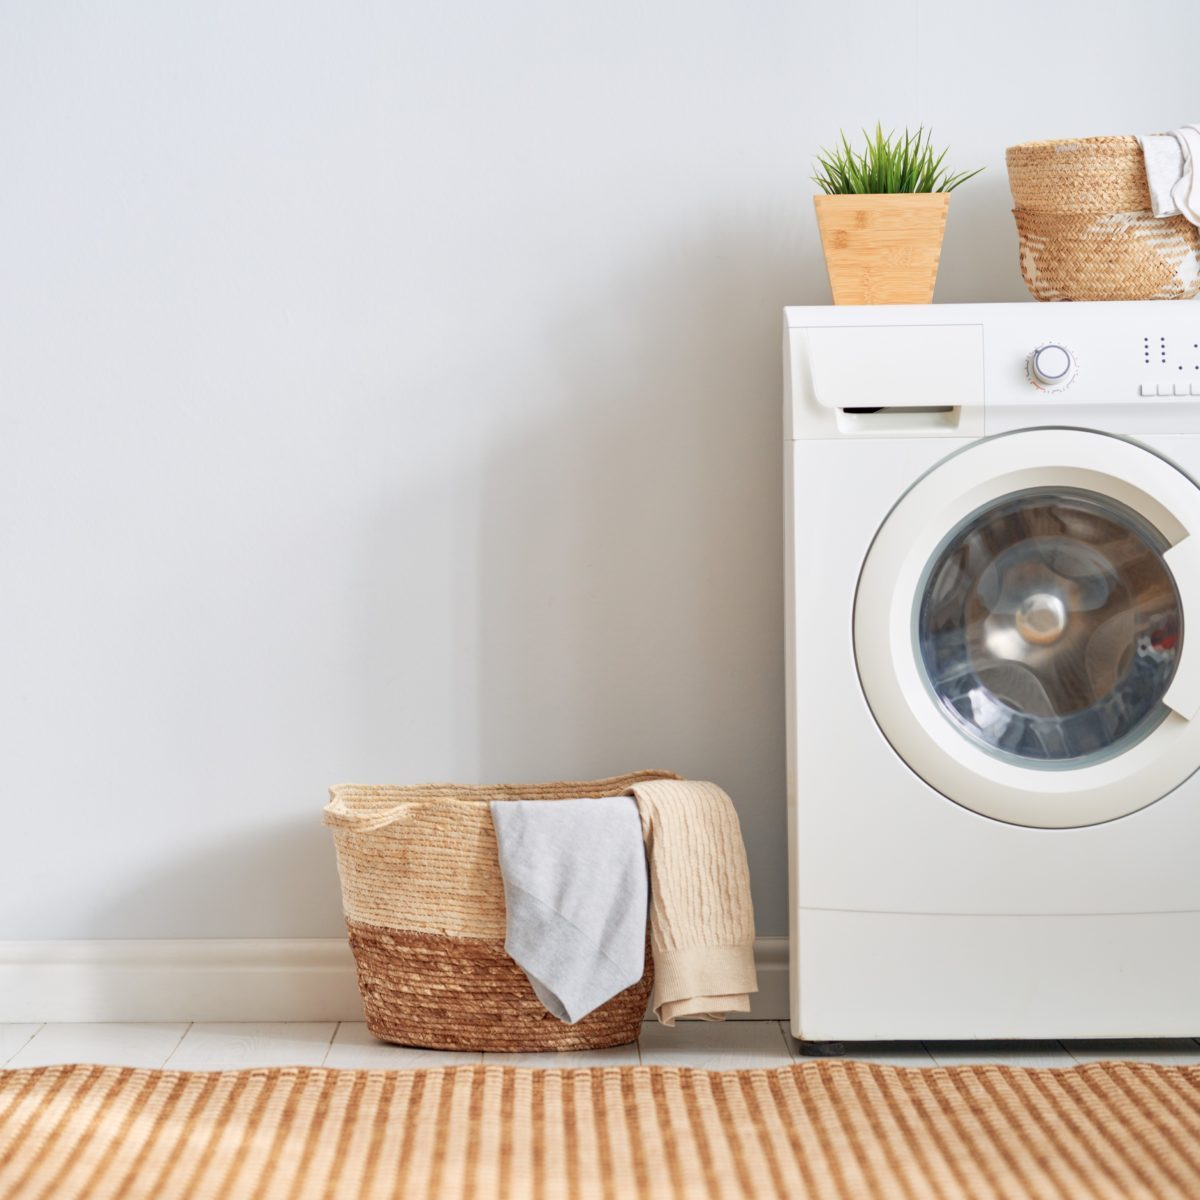 Where's My Washing Machine Filter and Do I Really Need to Clean It?